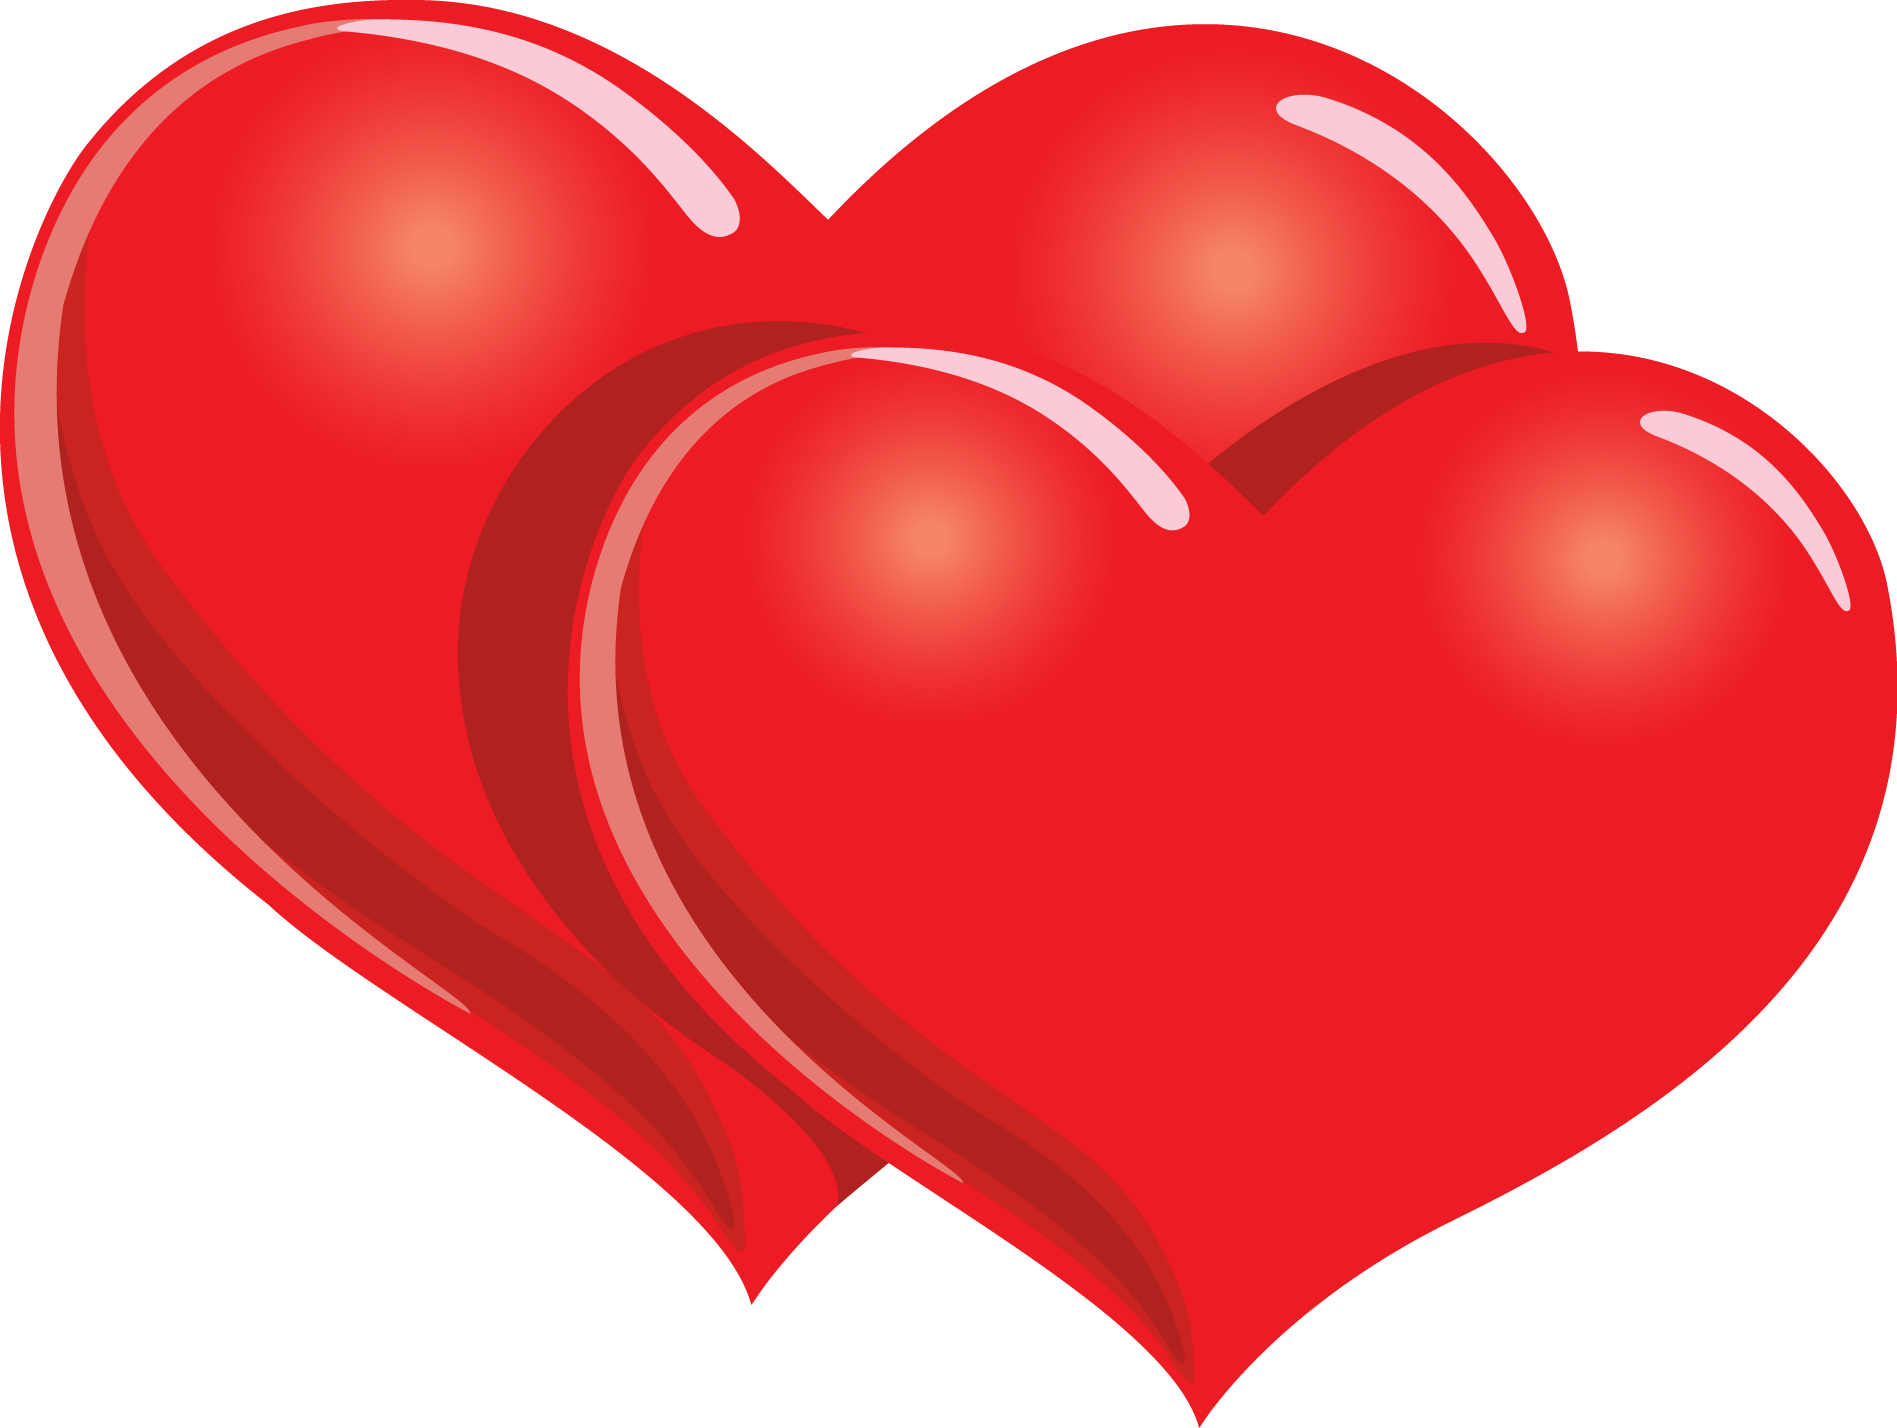 Hearts clipart sign.  red heart symbol